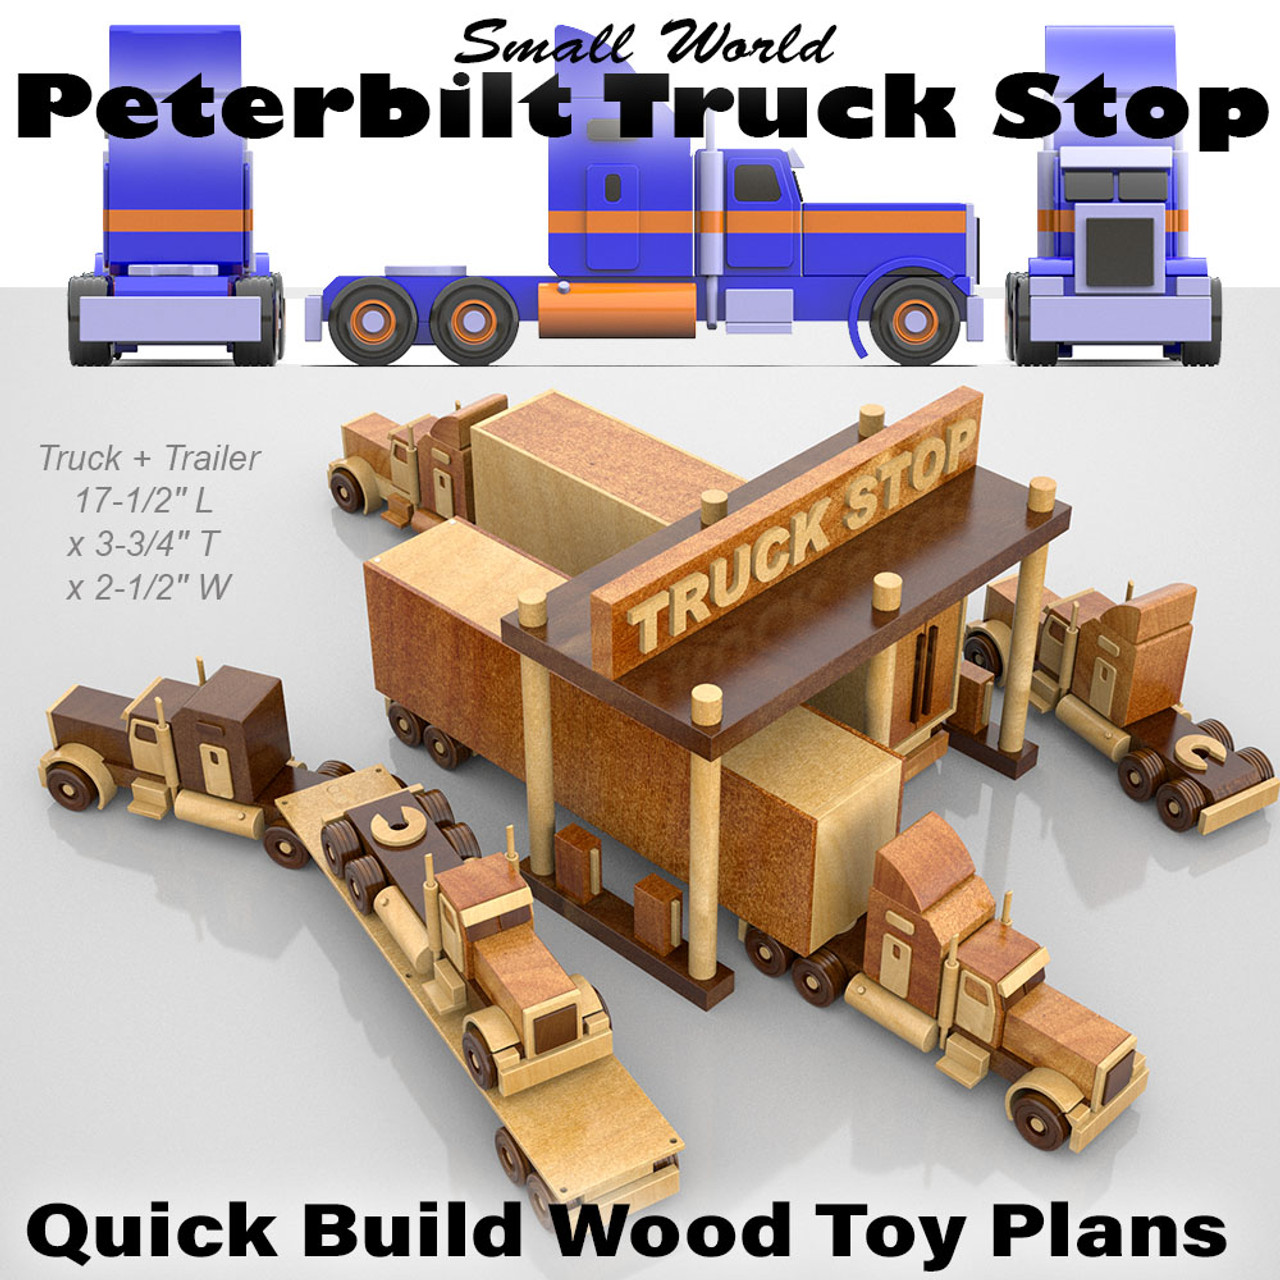 small world peterbilt truck stop wood toy plans (pdf download)